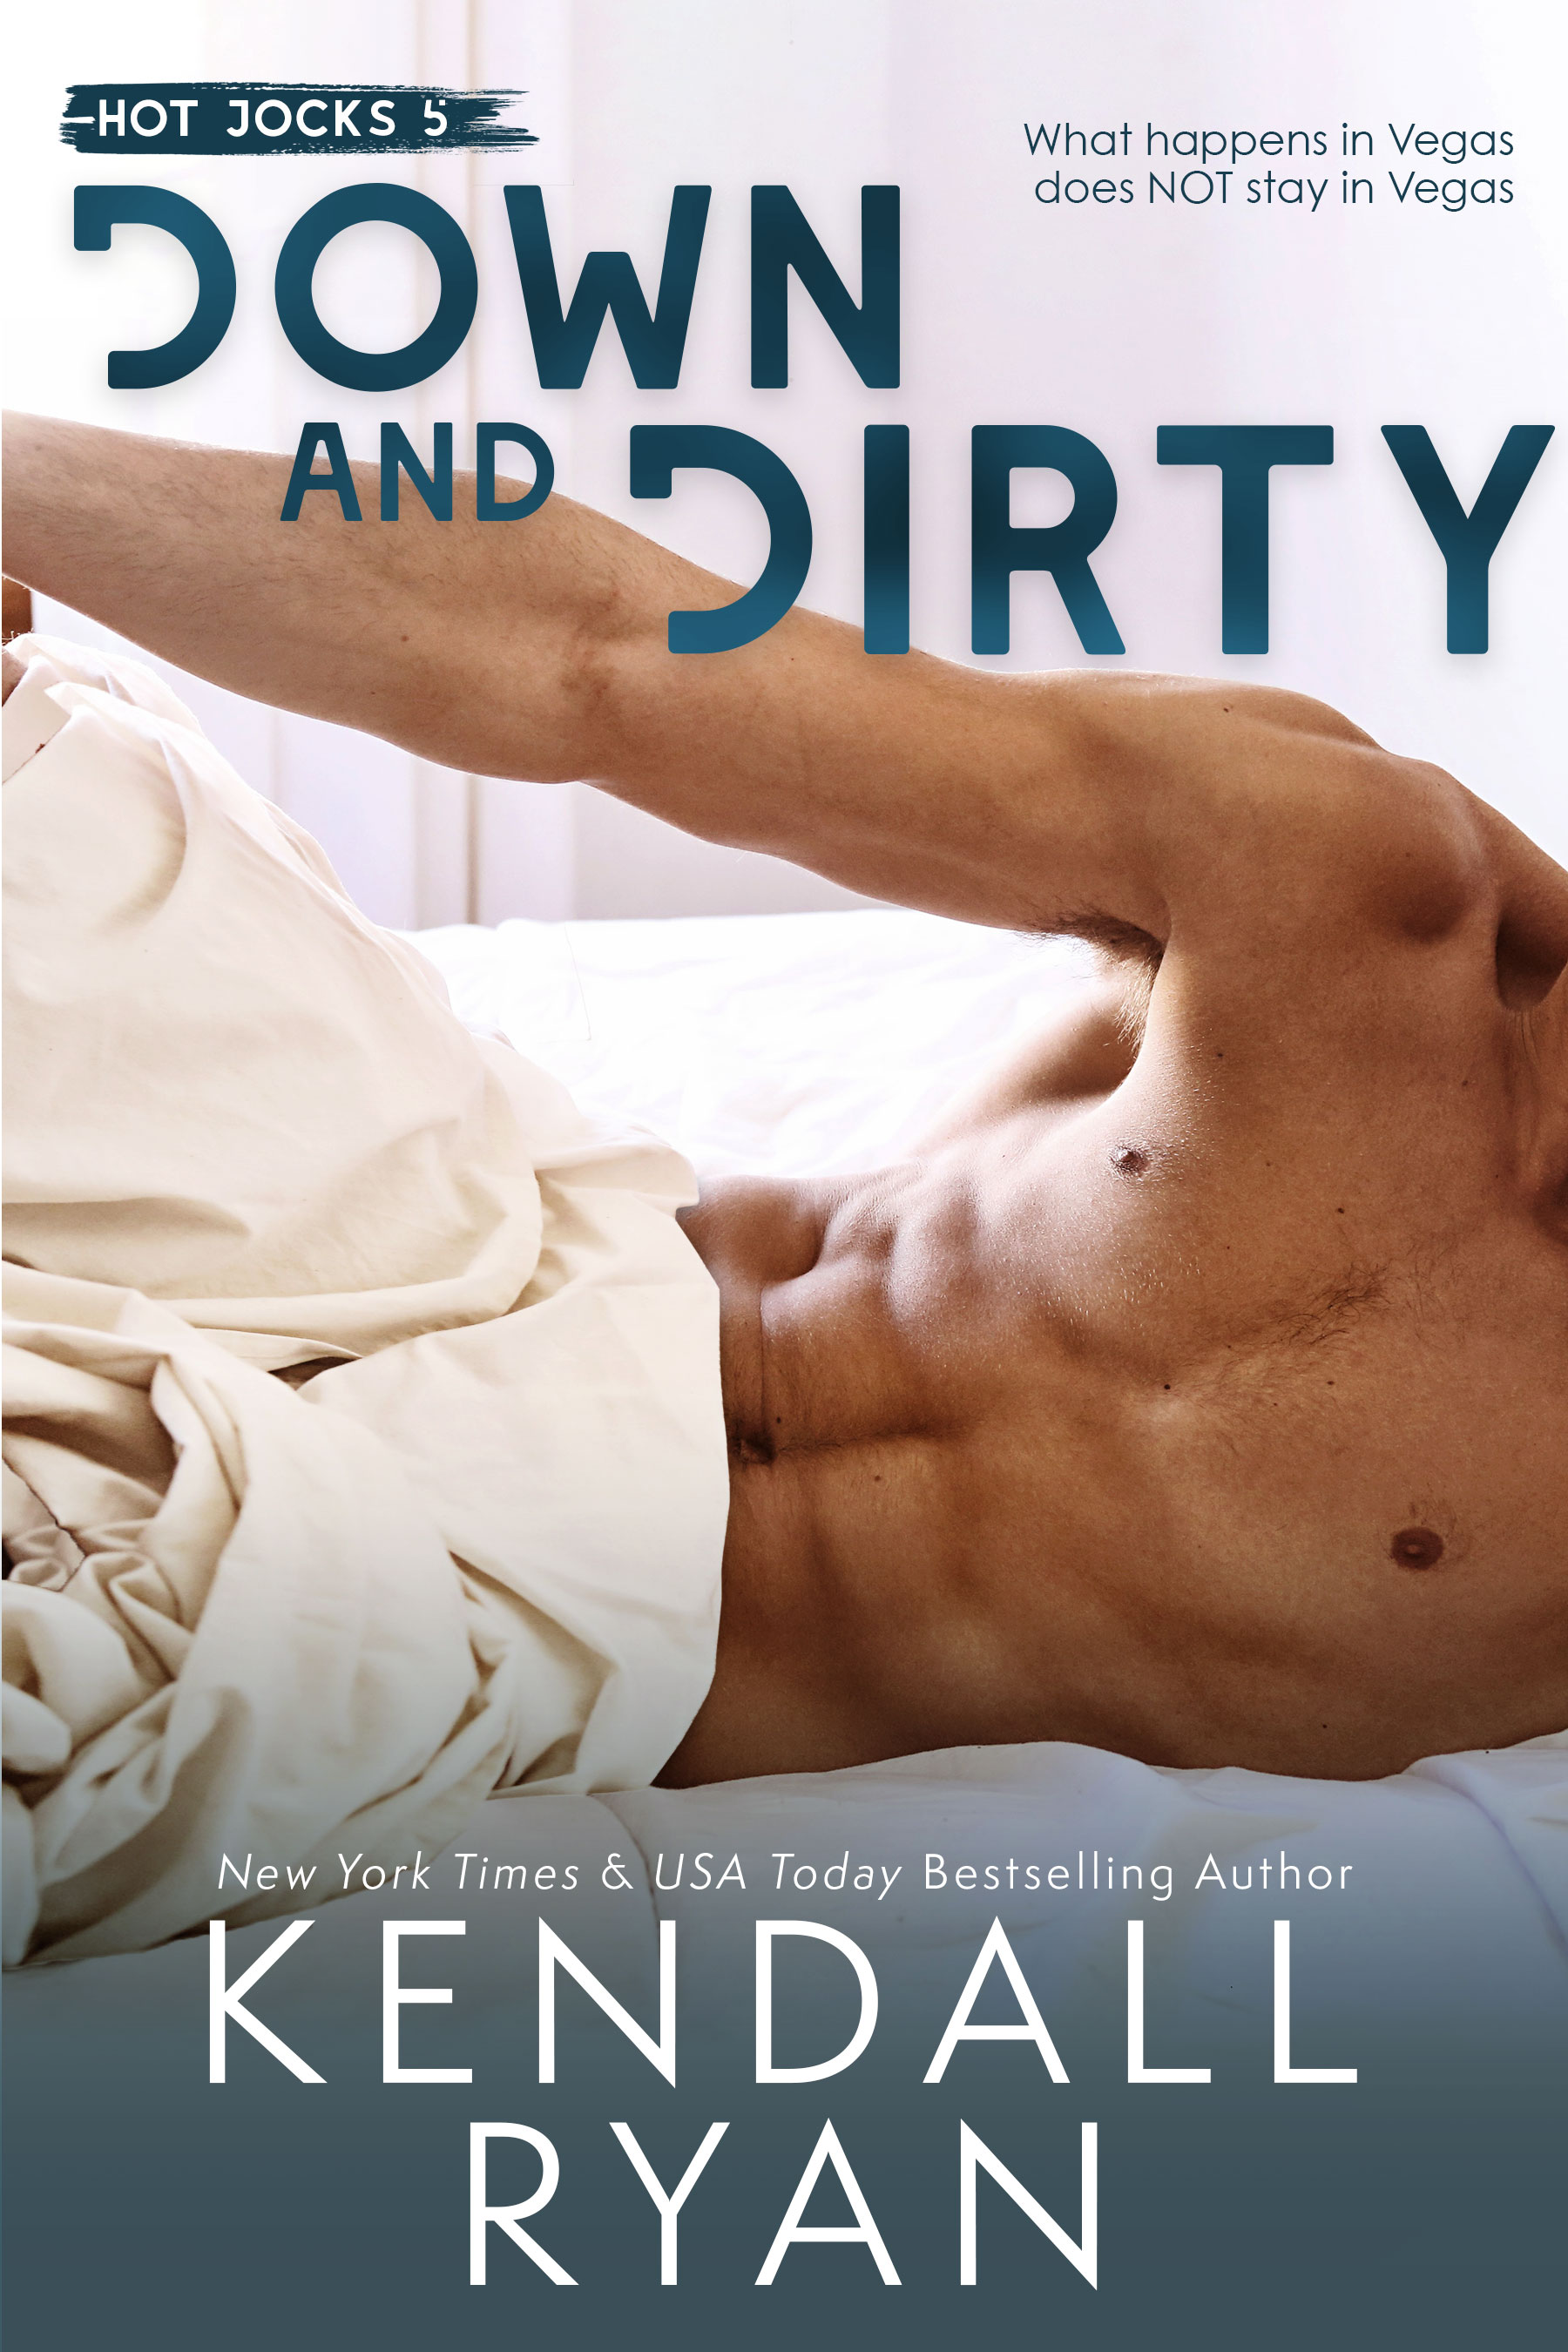 Down and Dirty (Hot Jocks, #5)